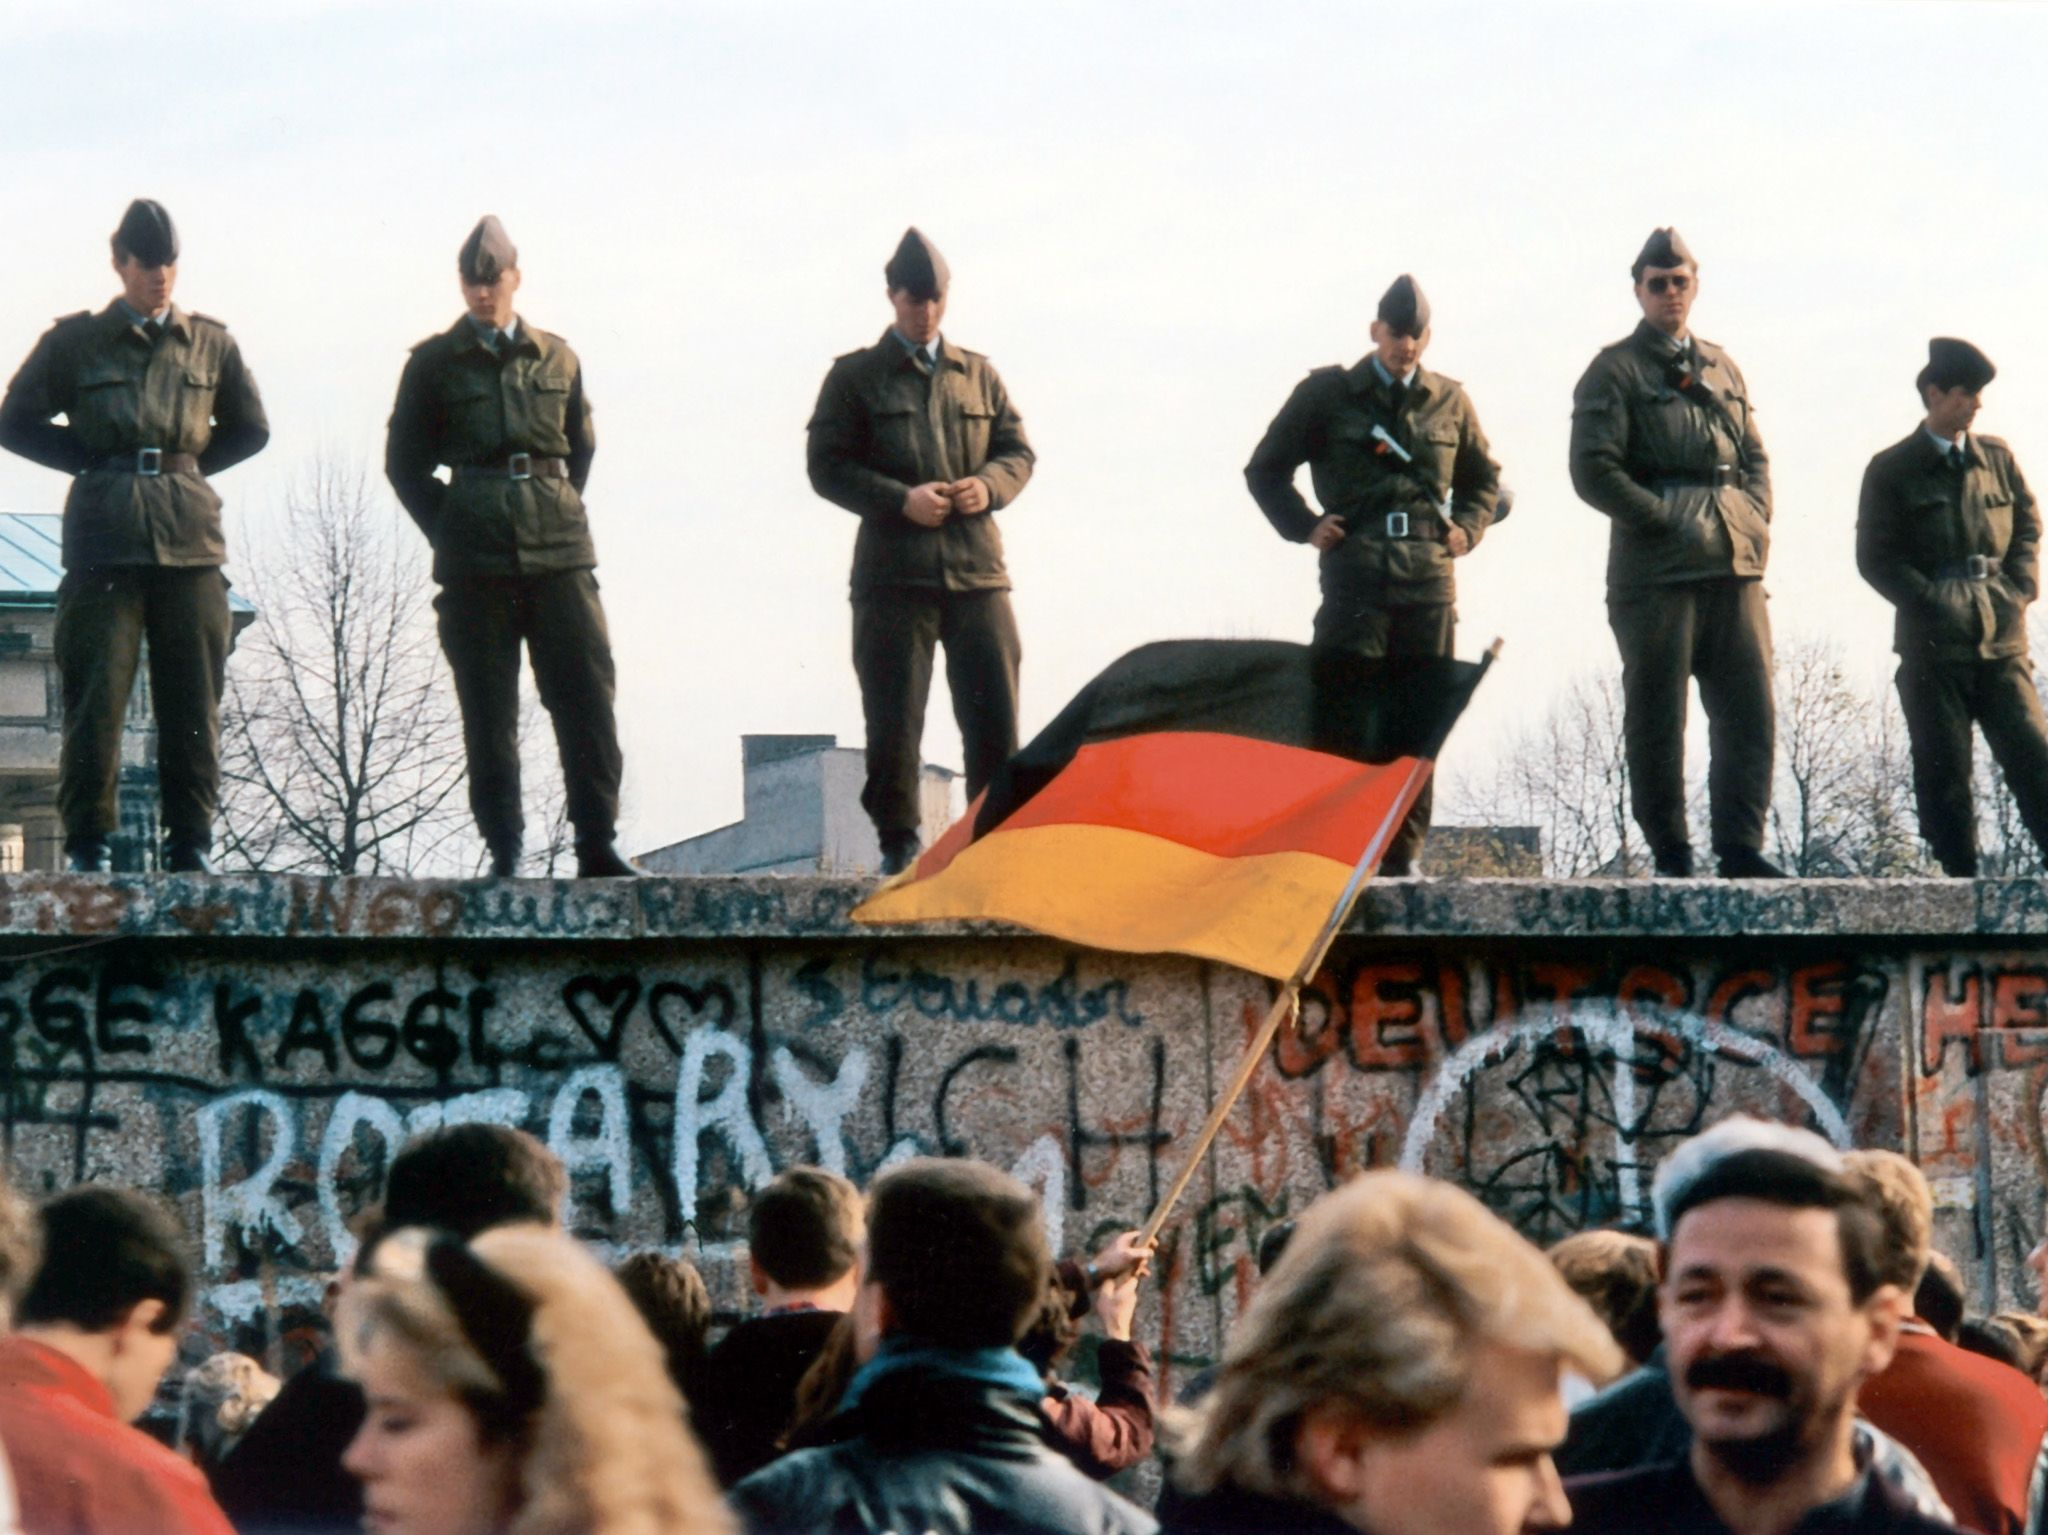 Soldiers on the Berlin Wall. This image is from Decades Remixed: The '80s Greatest. [Foto del giorno - October 2018]